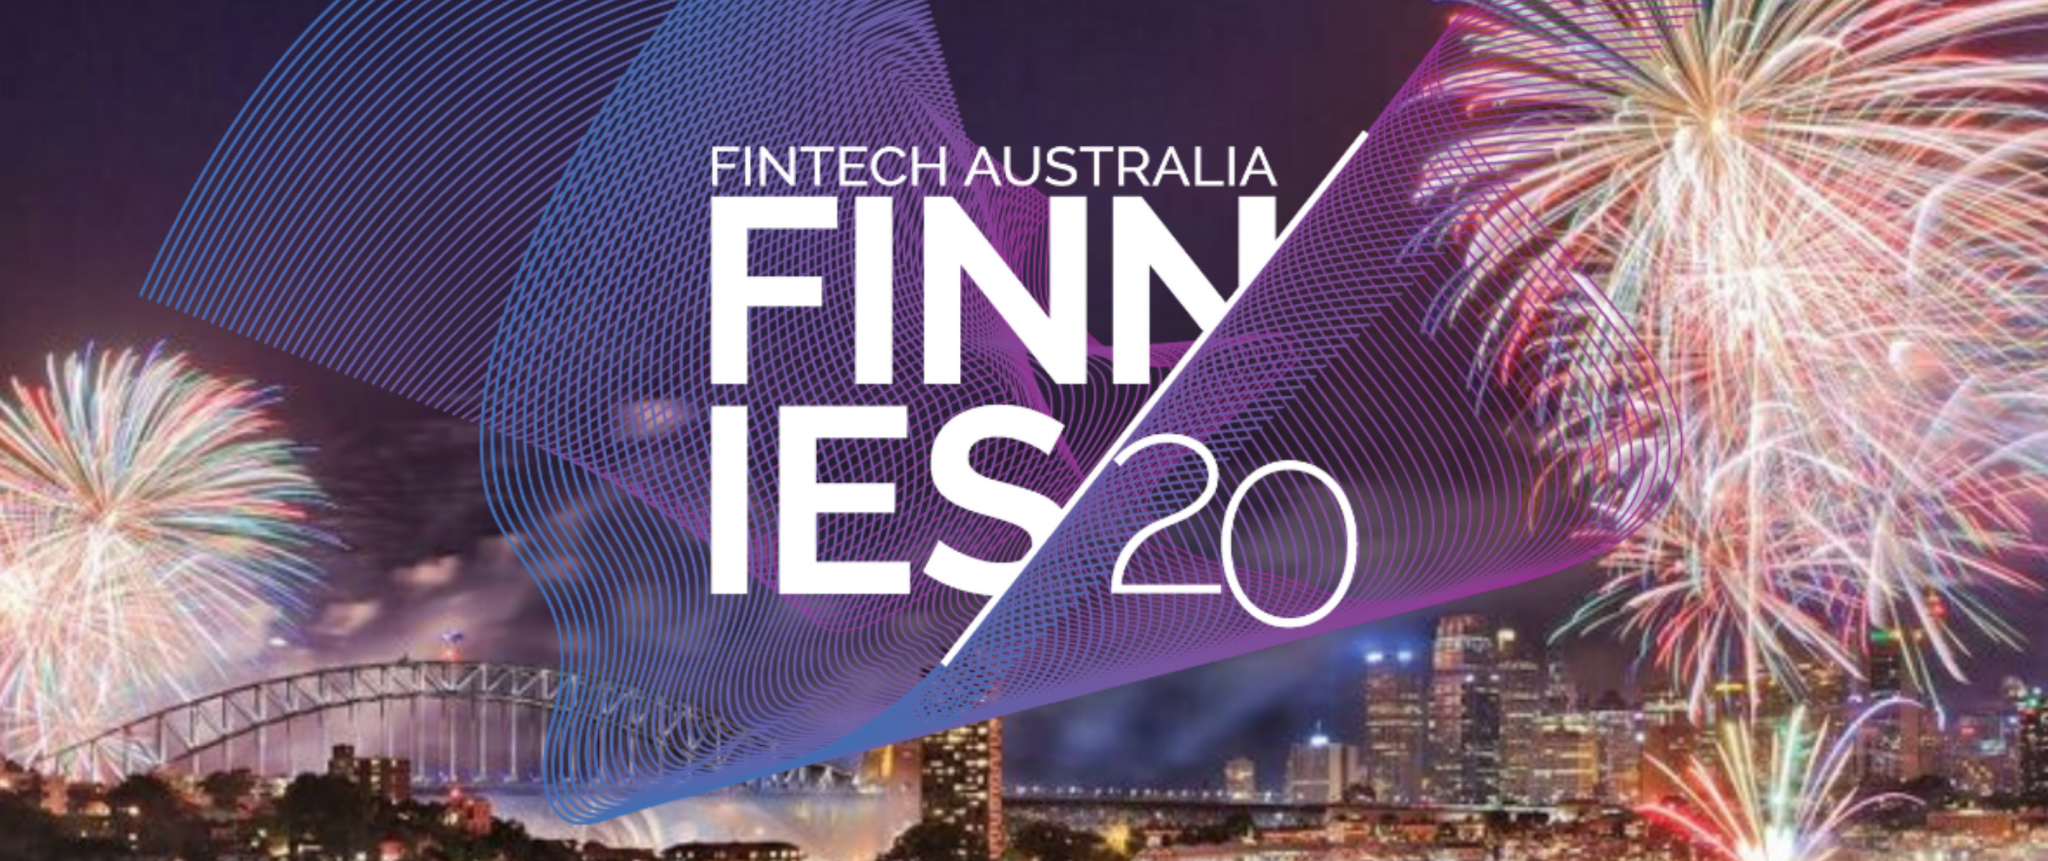 Elbaite is finalist for finnies 2020